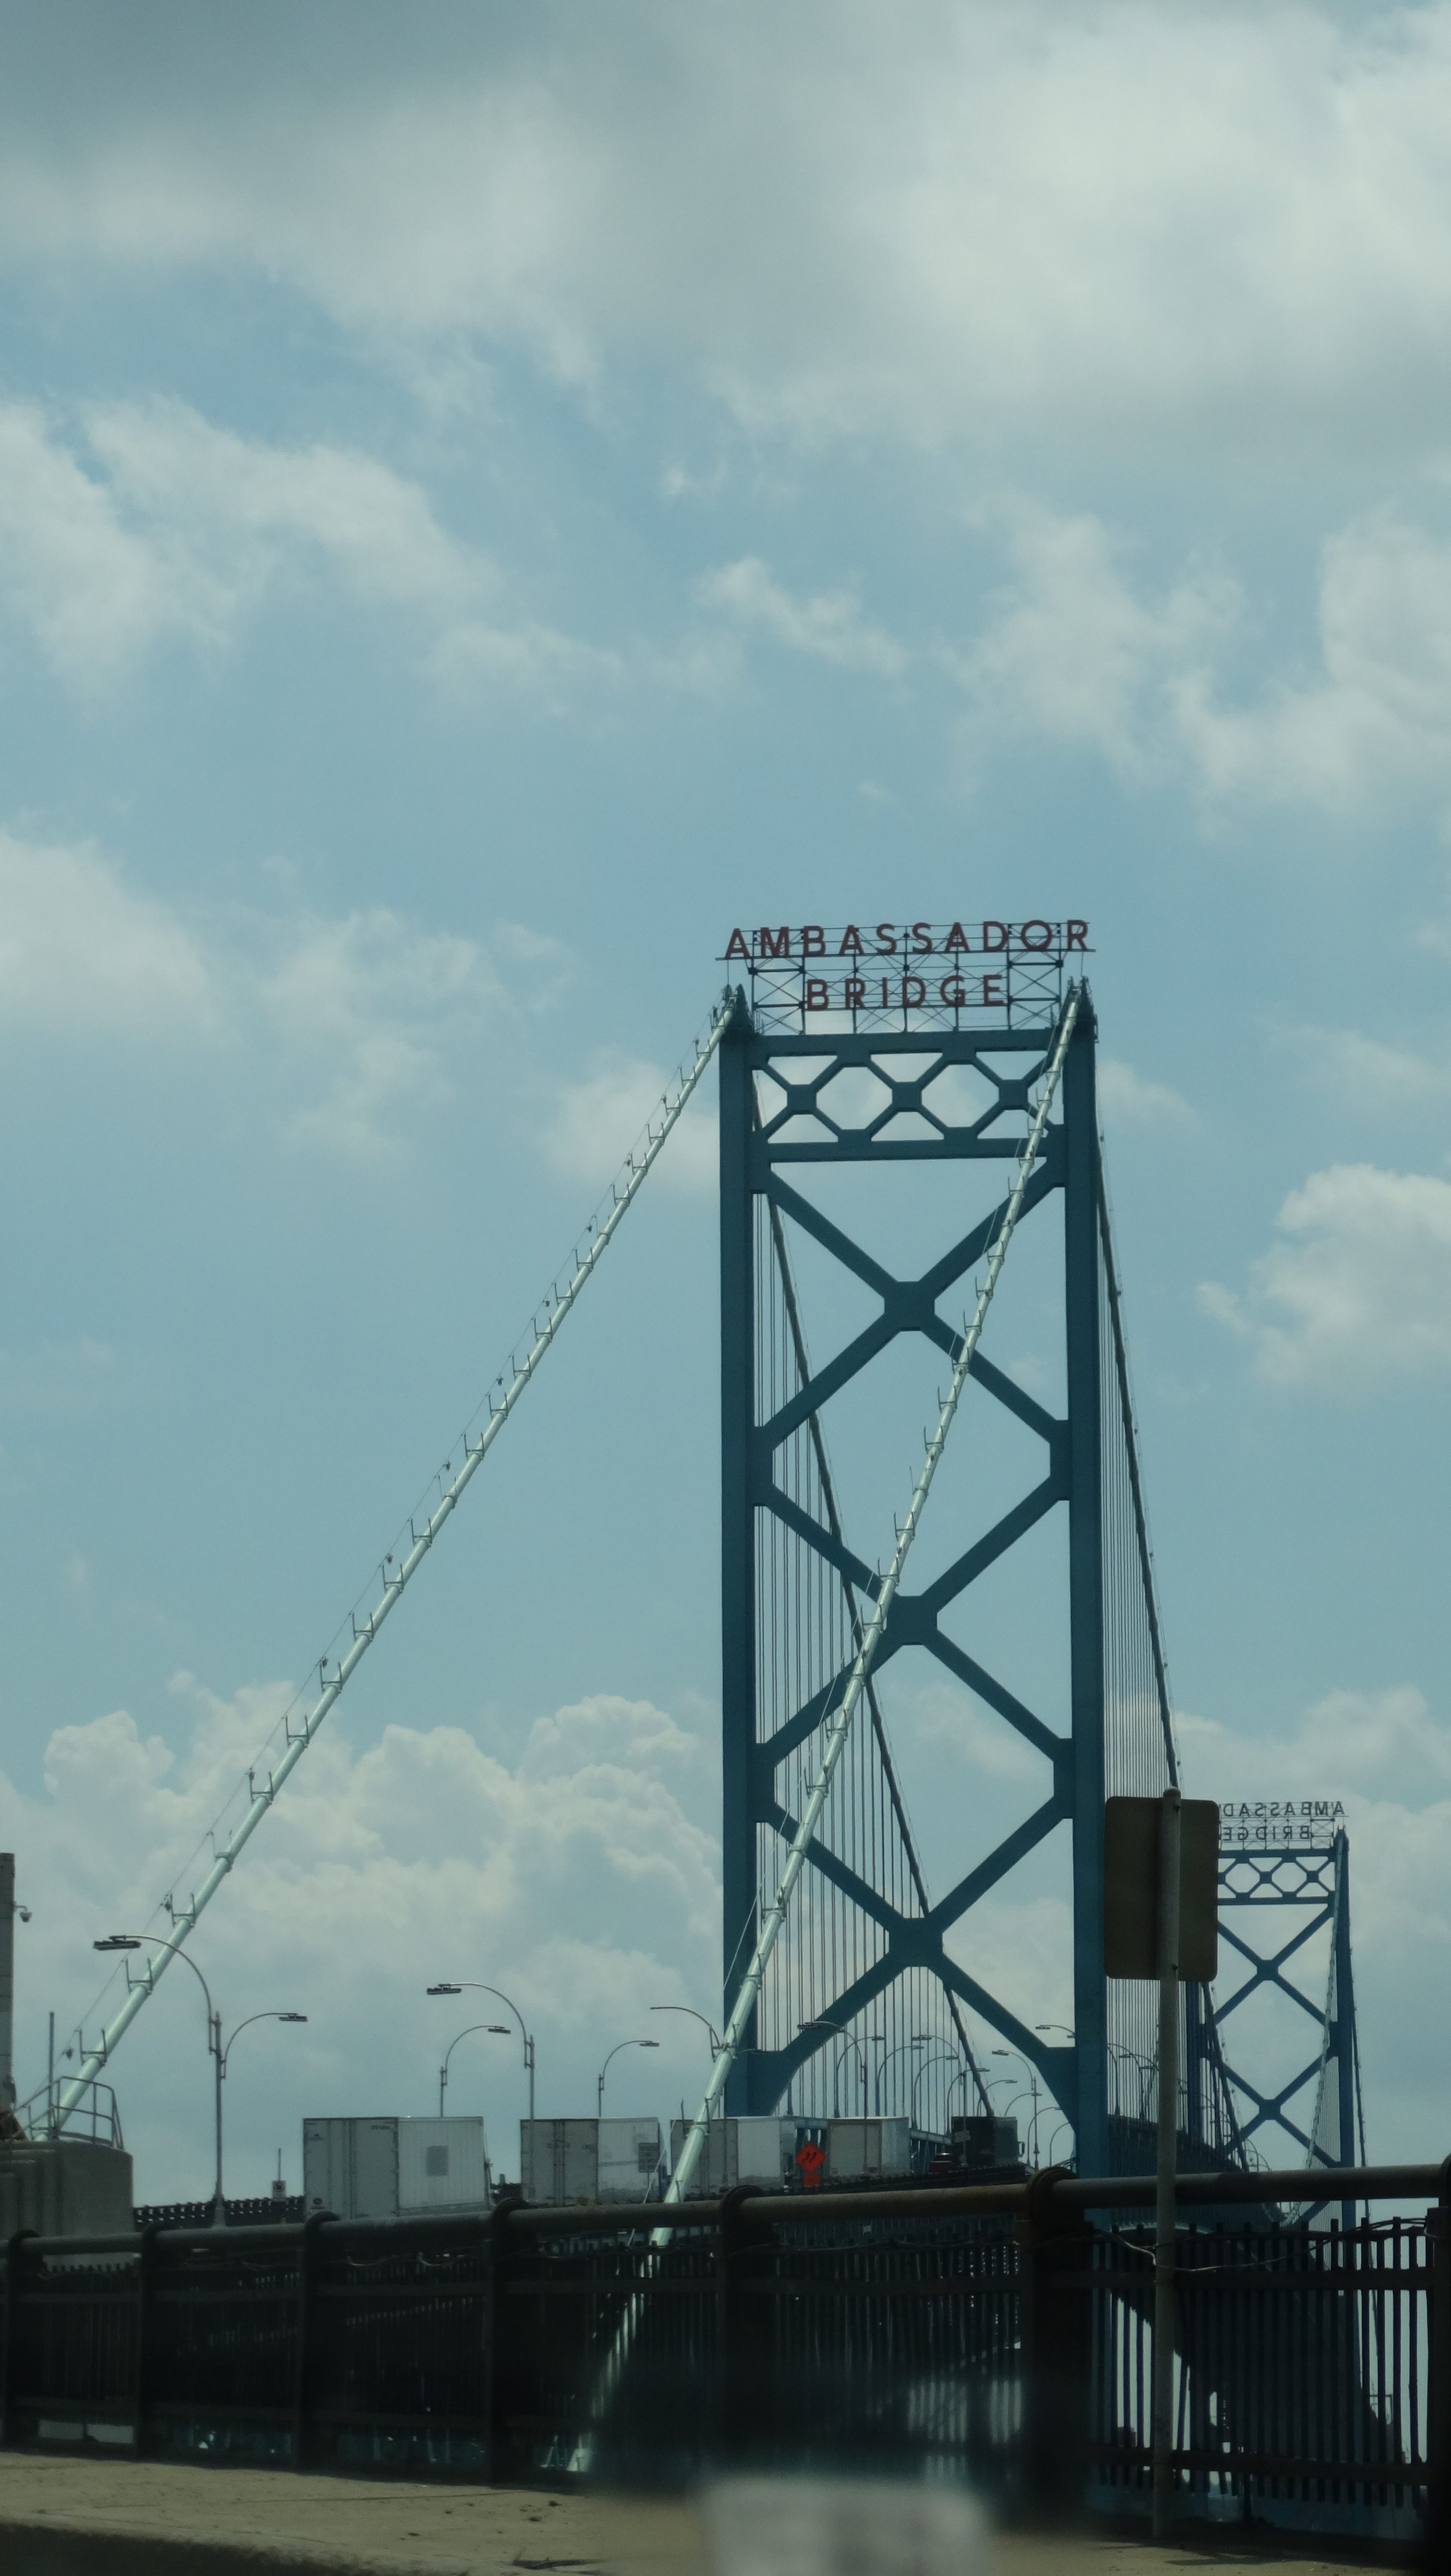 Trucks line up on the Ambassador Bridge to cross from Detroit into Canada.